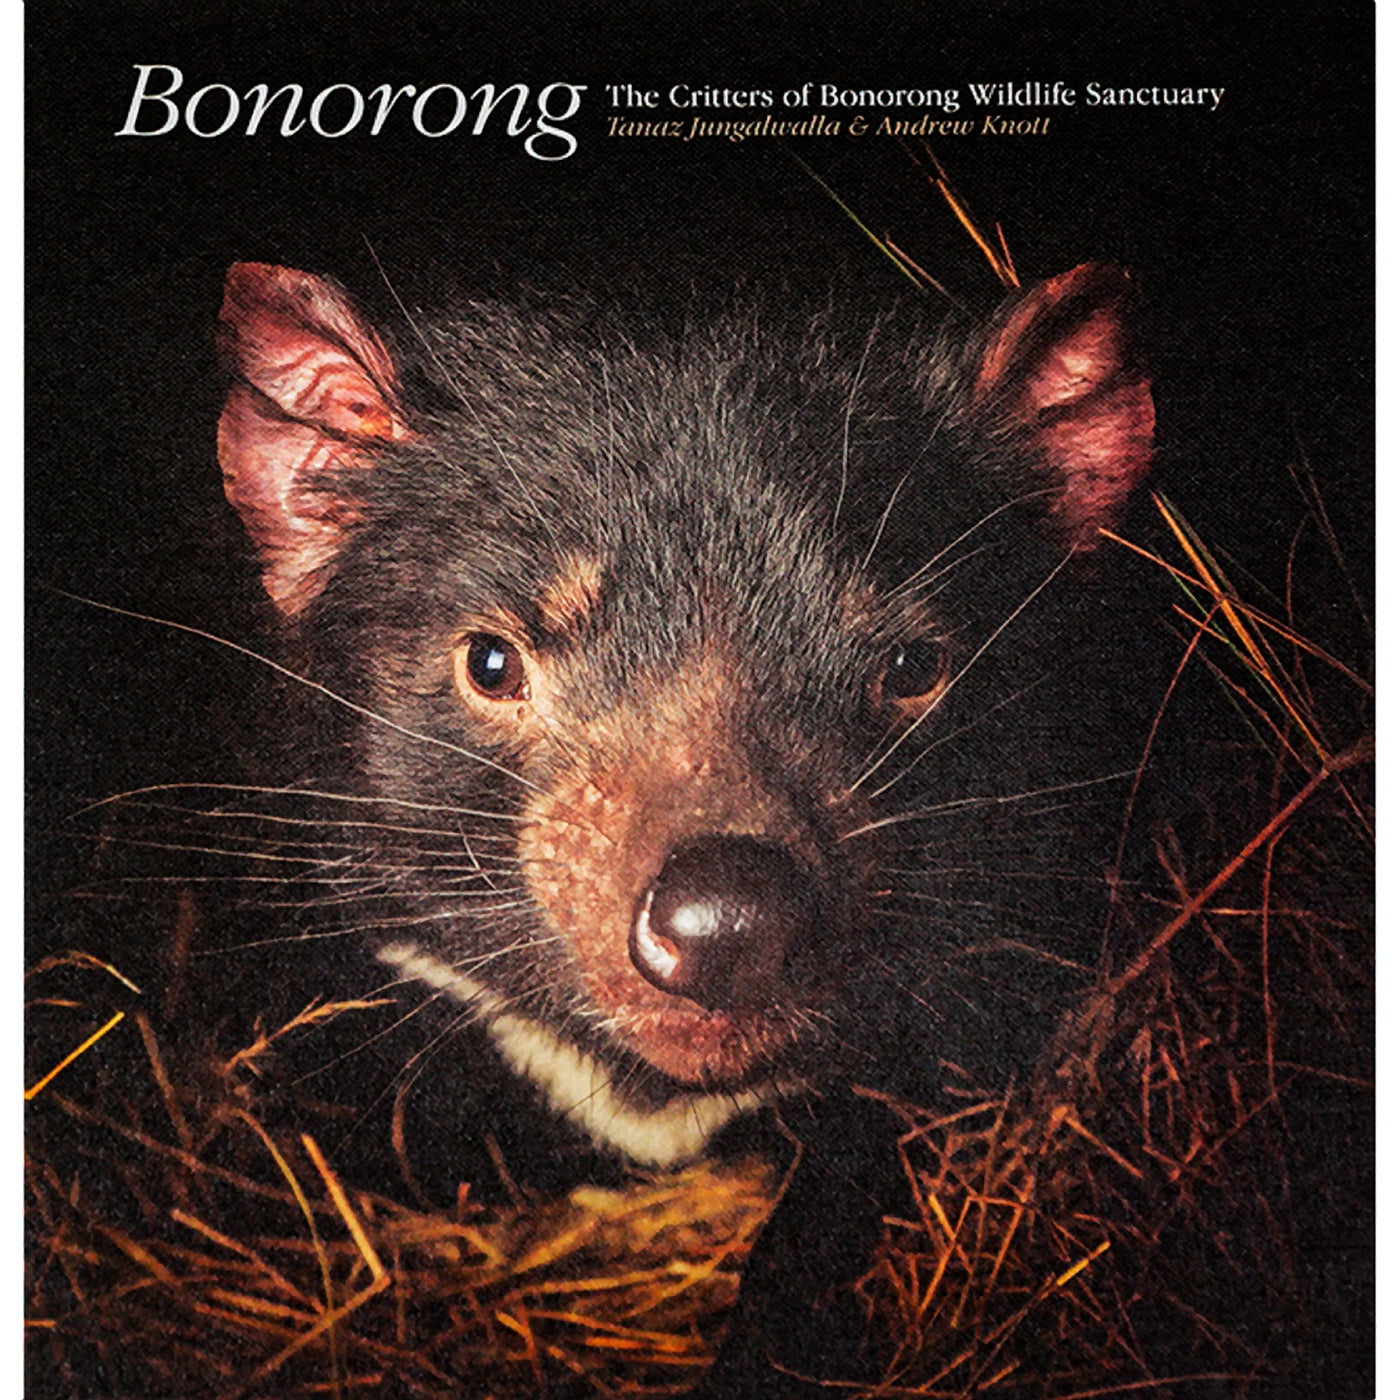 Bonorong - The Critters of Bonorong Wildlife Sanctuary